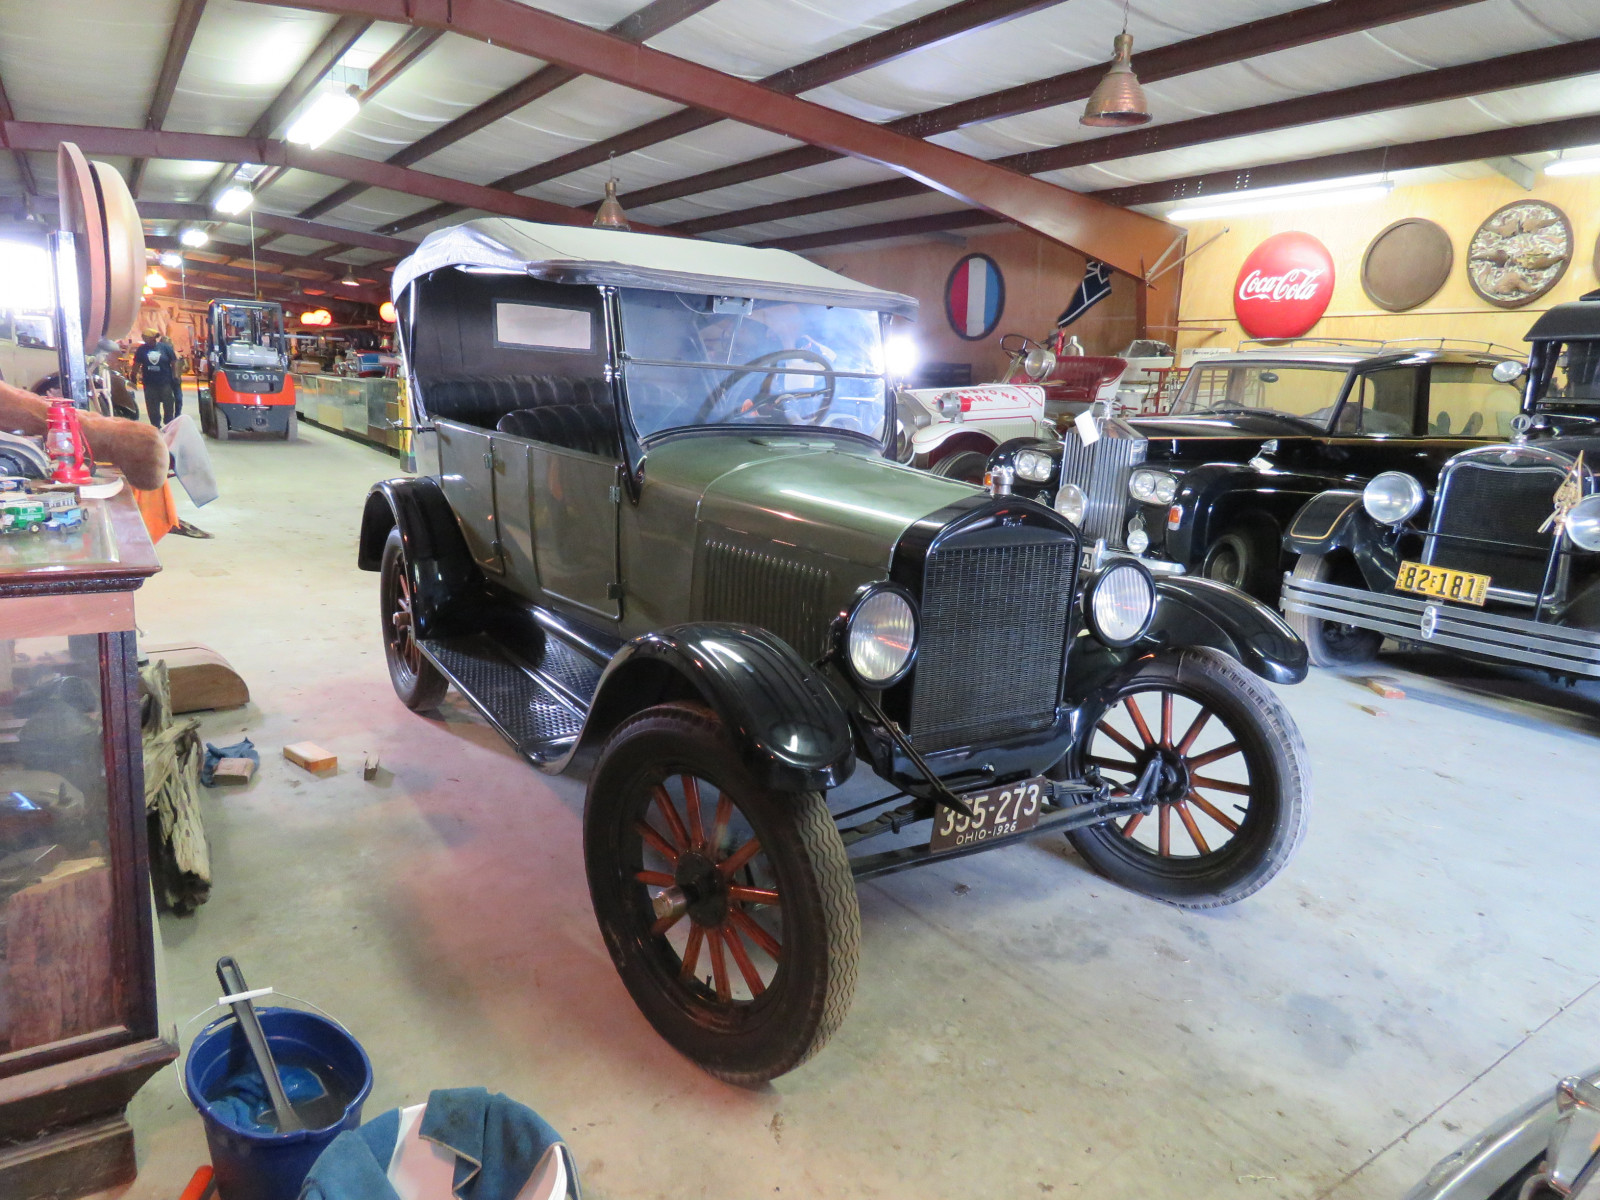 1926 Ford Model T Touring Car - Image 2